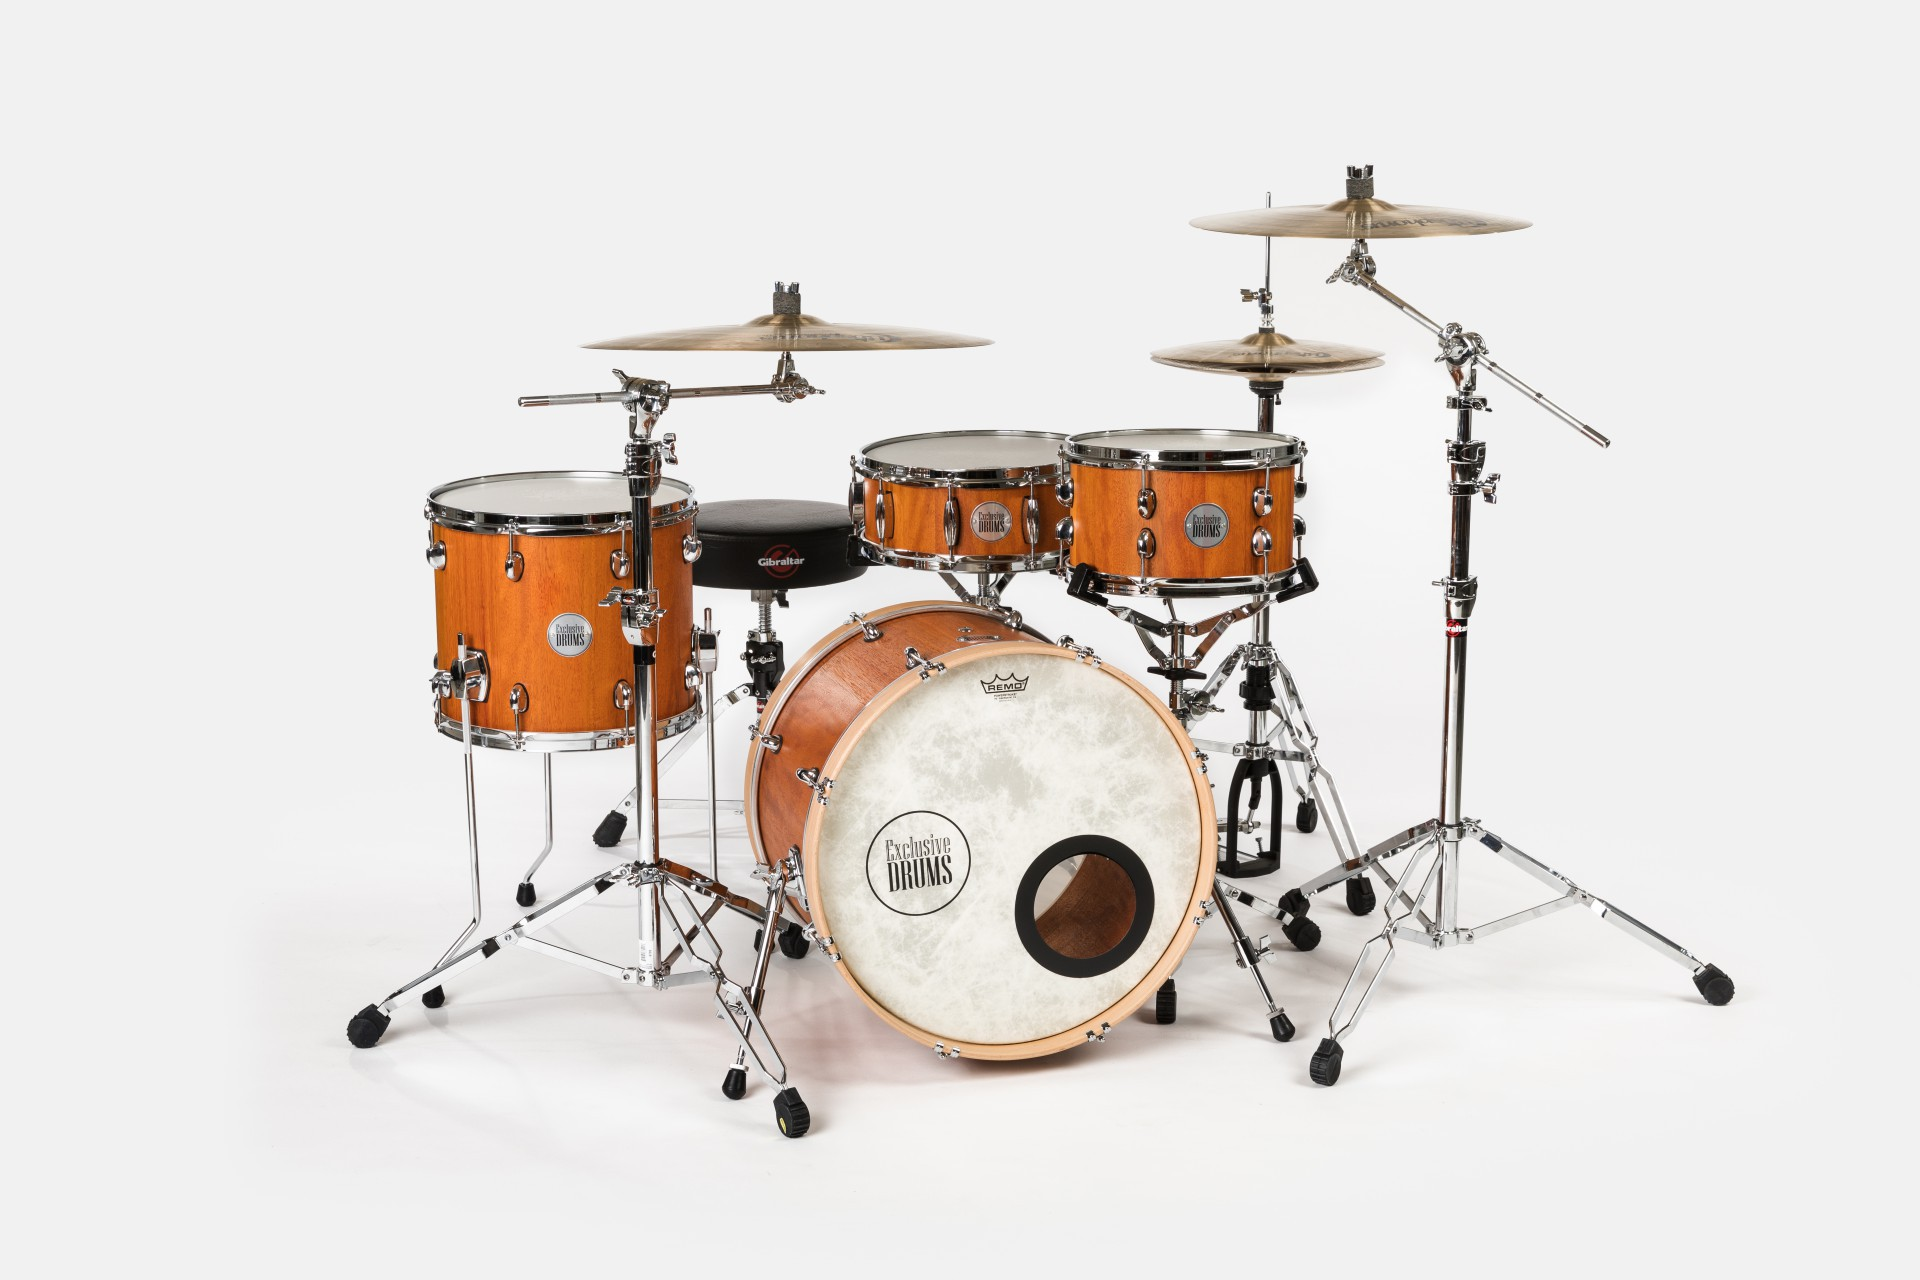 Afzelia Drum Set